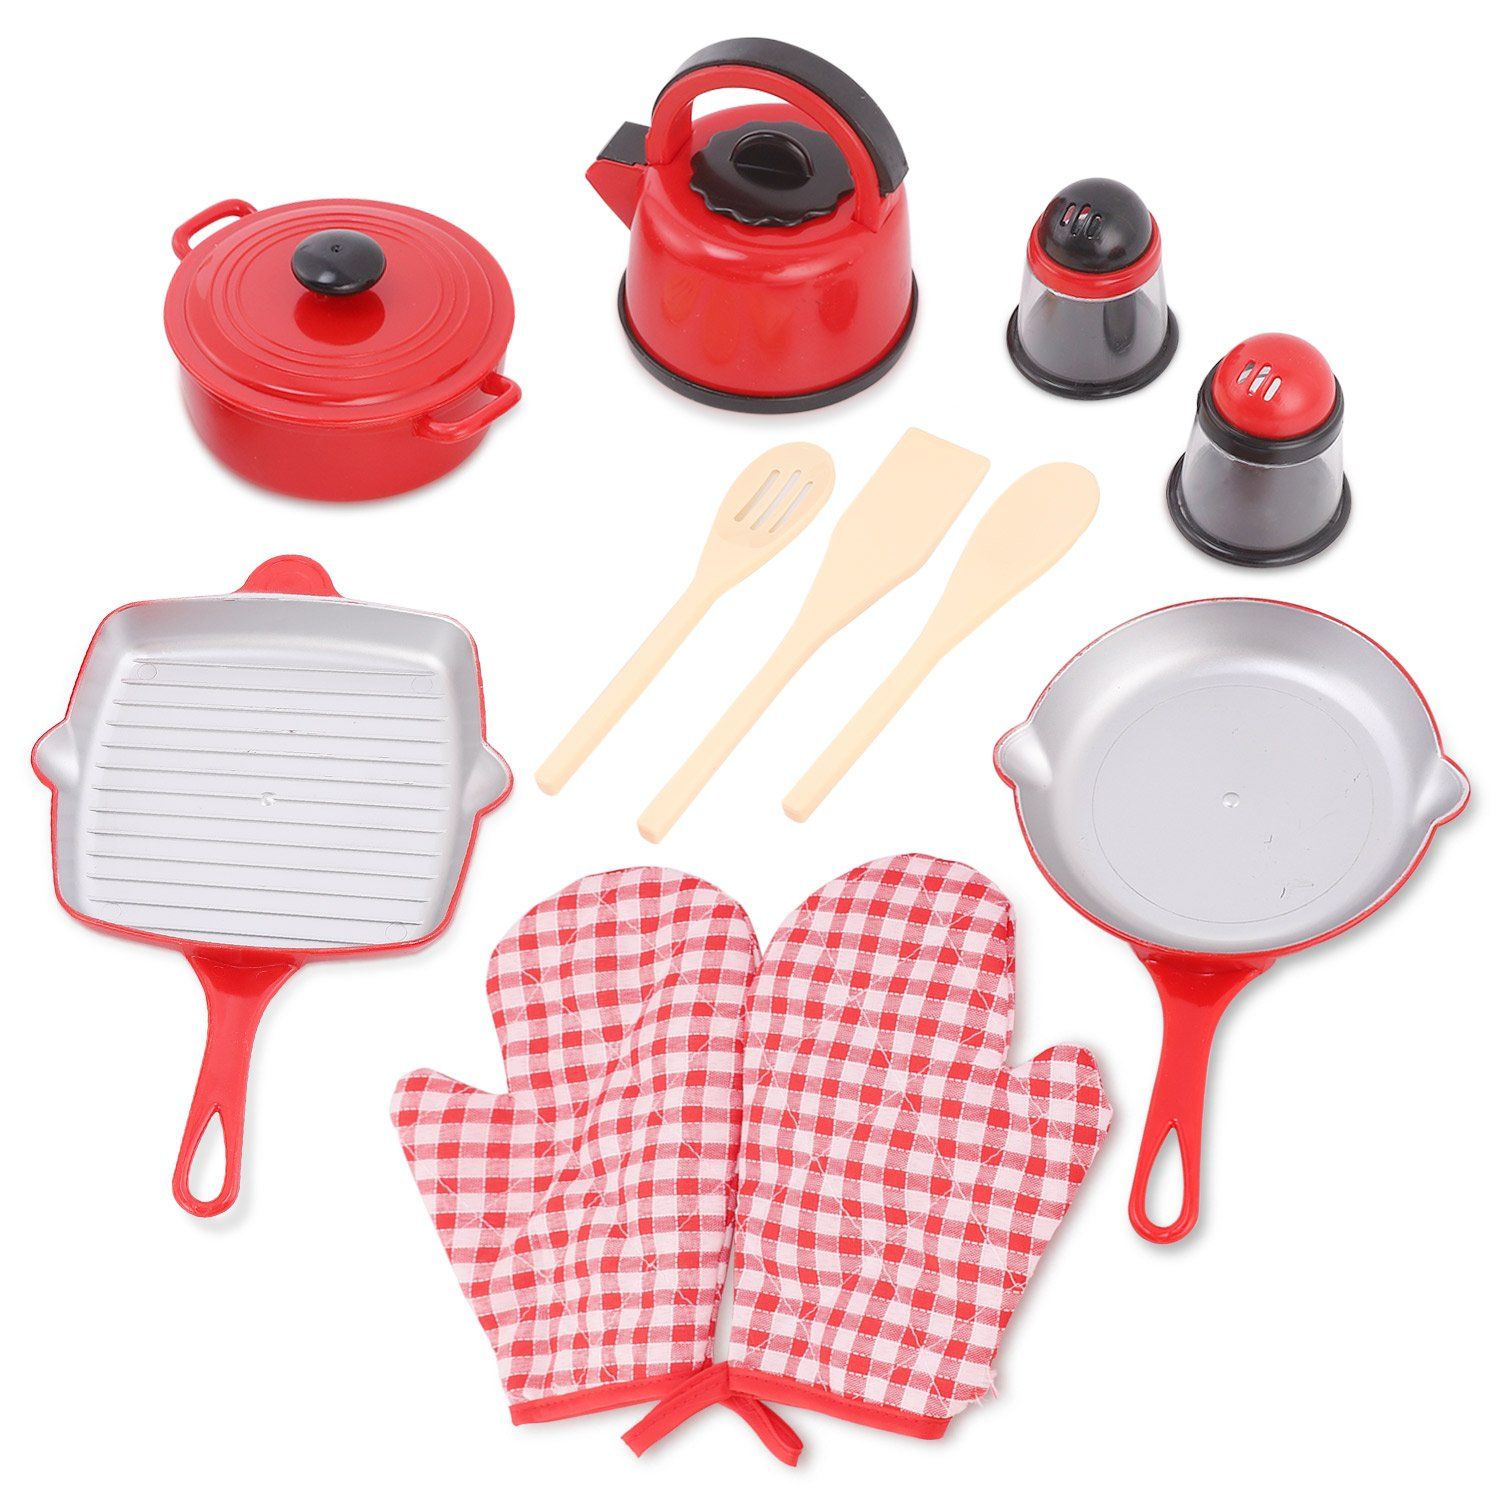 Liberty Imports Kitchen Cookware Pots and Pans Plastic Pretend Playset for Kids - Grill Pan, Kettle, Cooking Utensils Set, Salt and Pepper Shakers by Liberty Imports